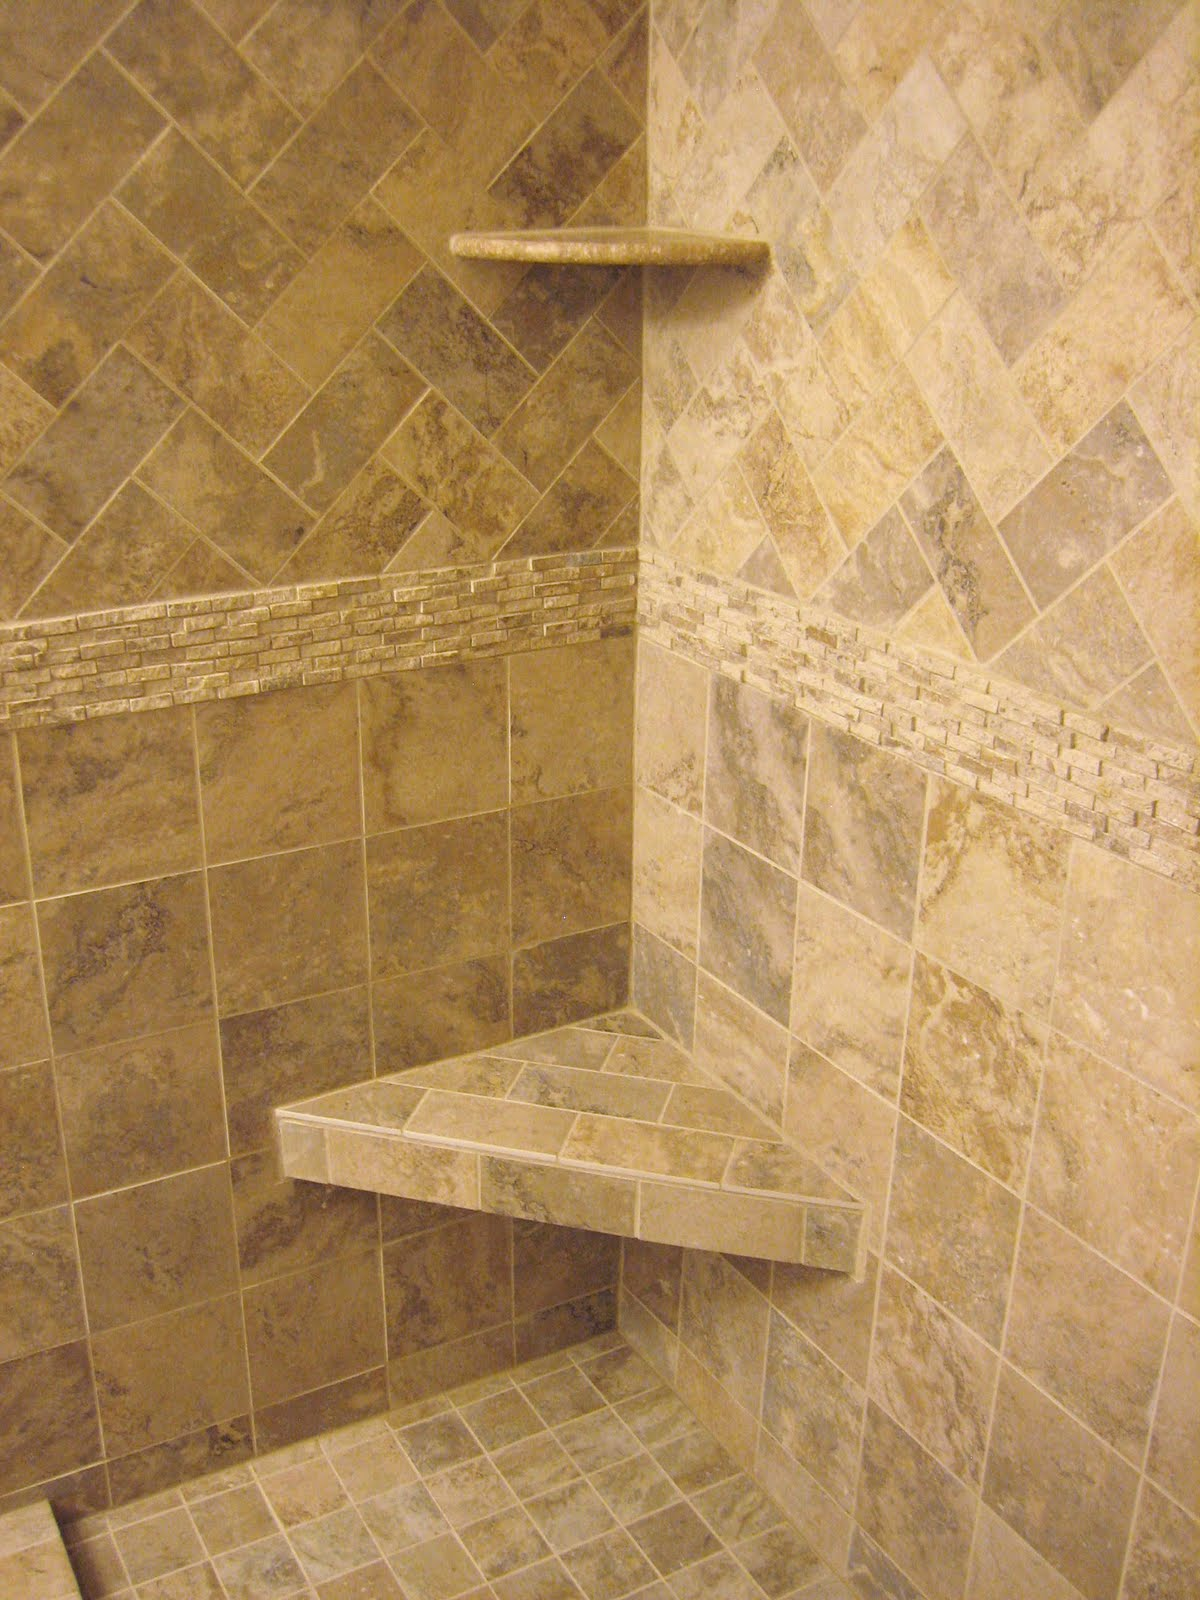 H winter showroom blog june 2010 for Bathroom wall tile designs pictures